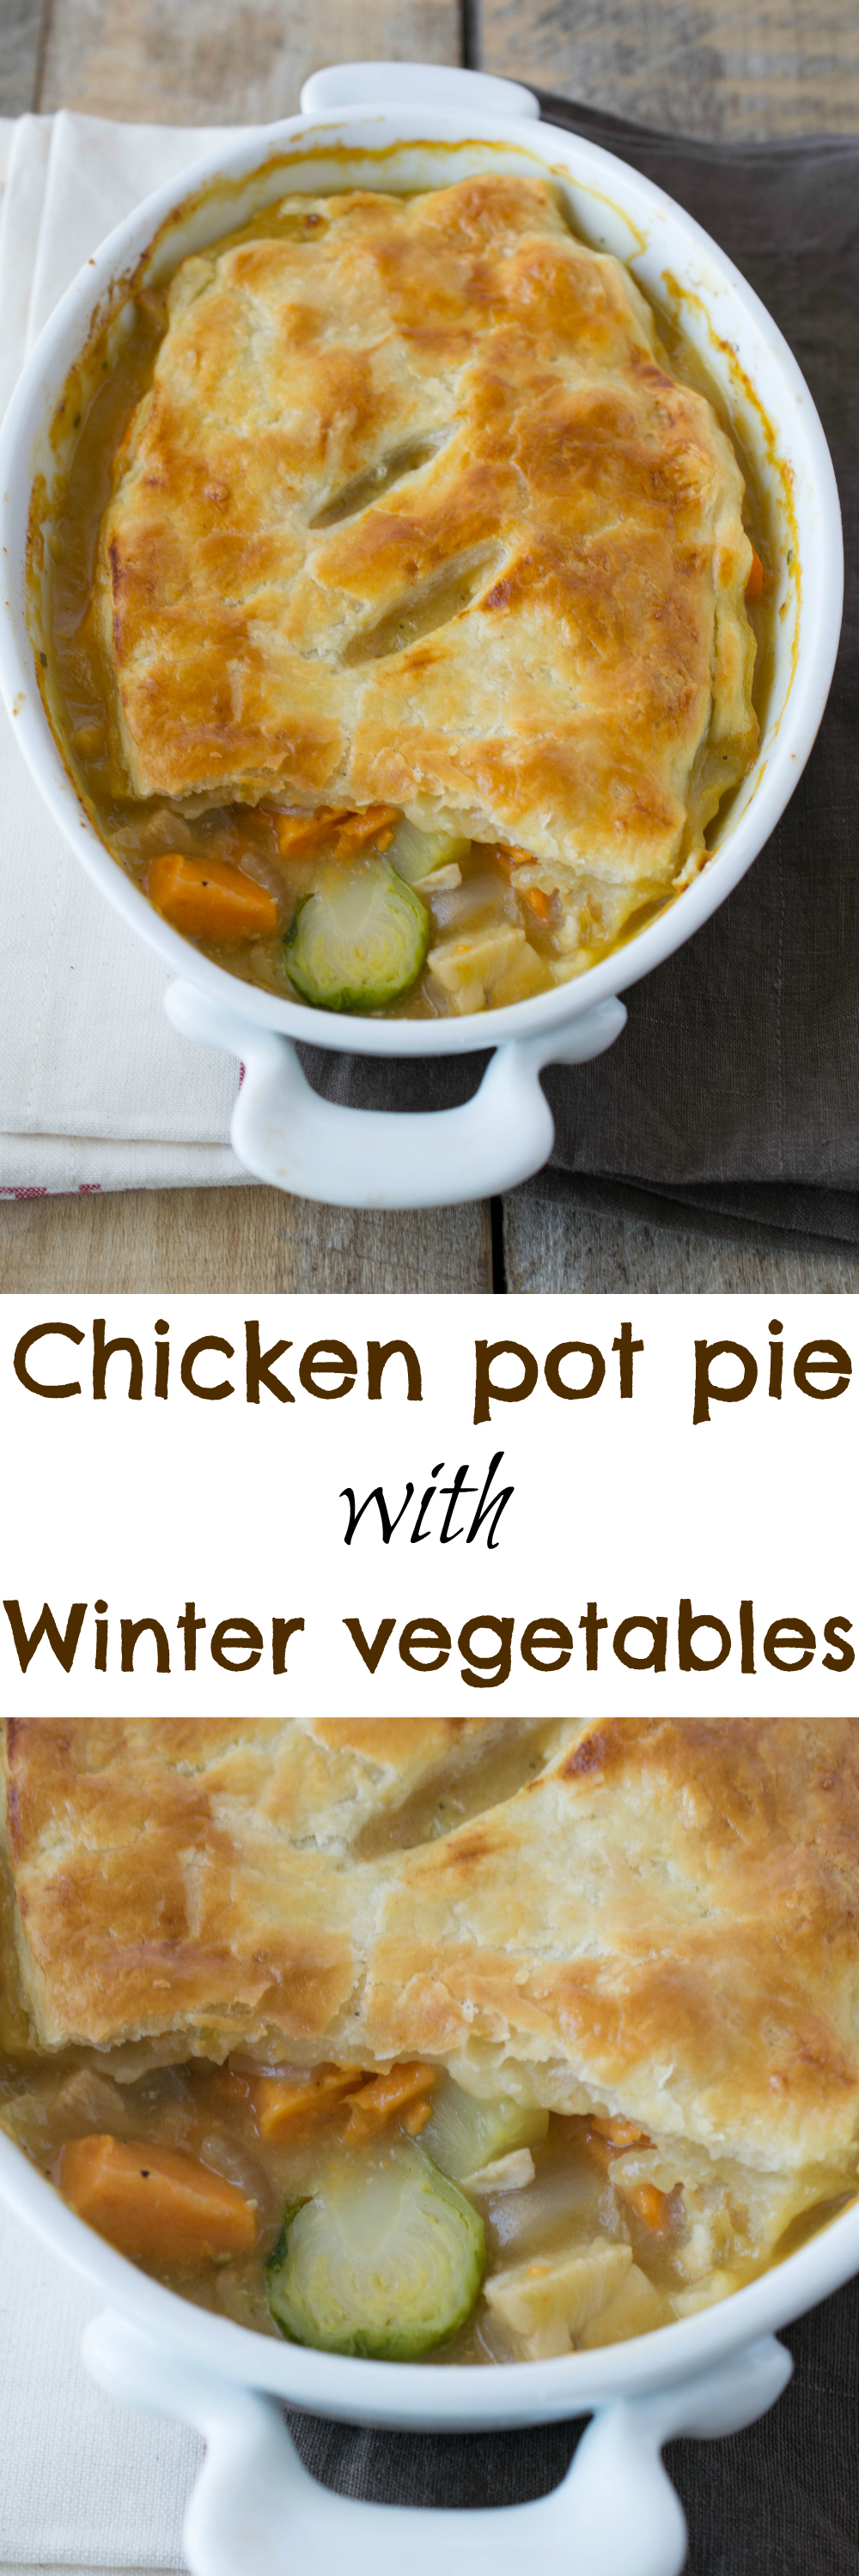 Chicken pot pie with Winter vegetables. Winter vegetables are cooked in a dairy-free, gravy and topped with a flaky buttery crust. It's the ultimate comfort food.